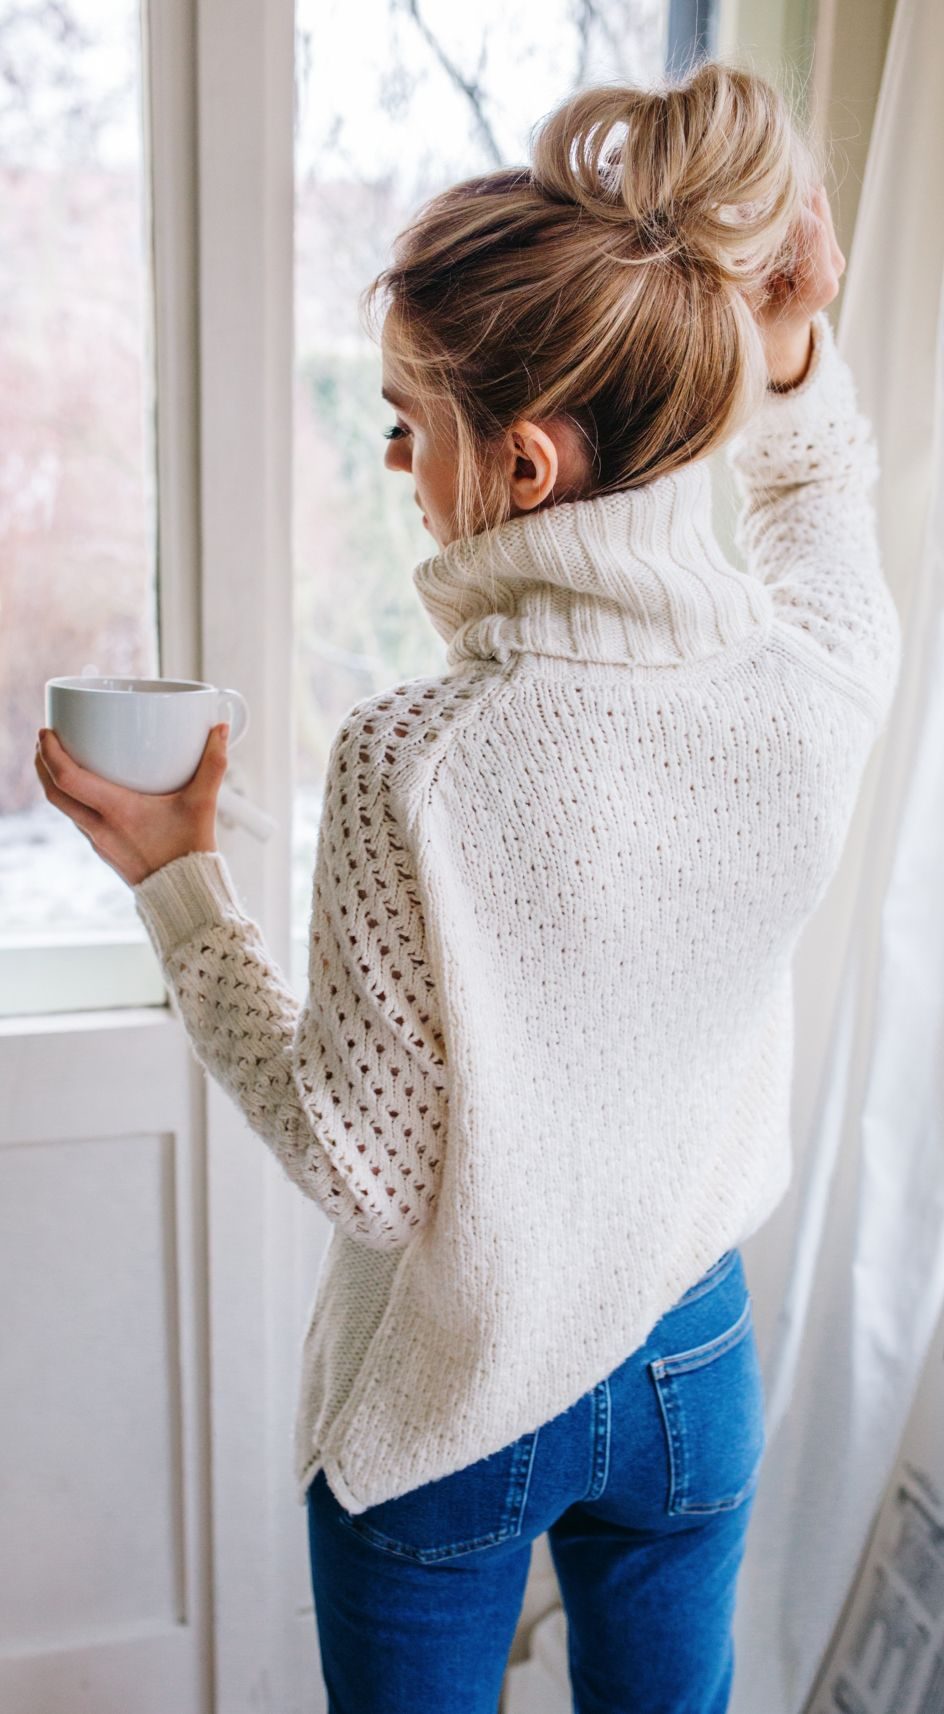 Image result for cozy sweaters for girls